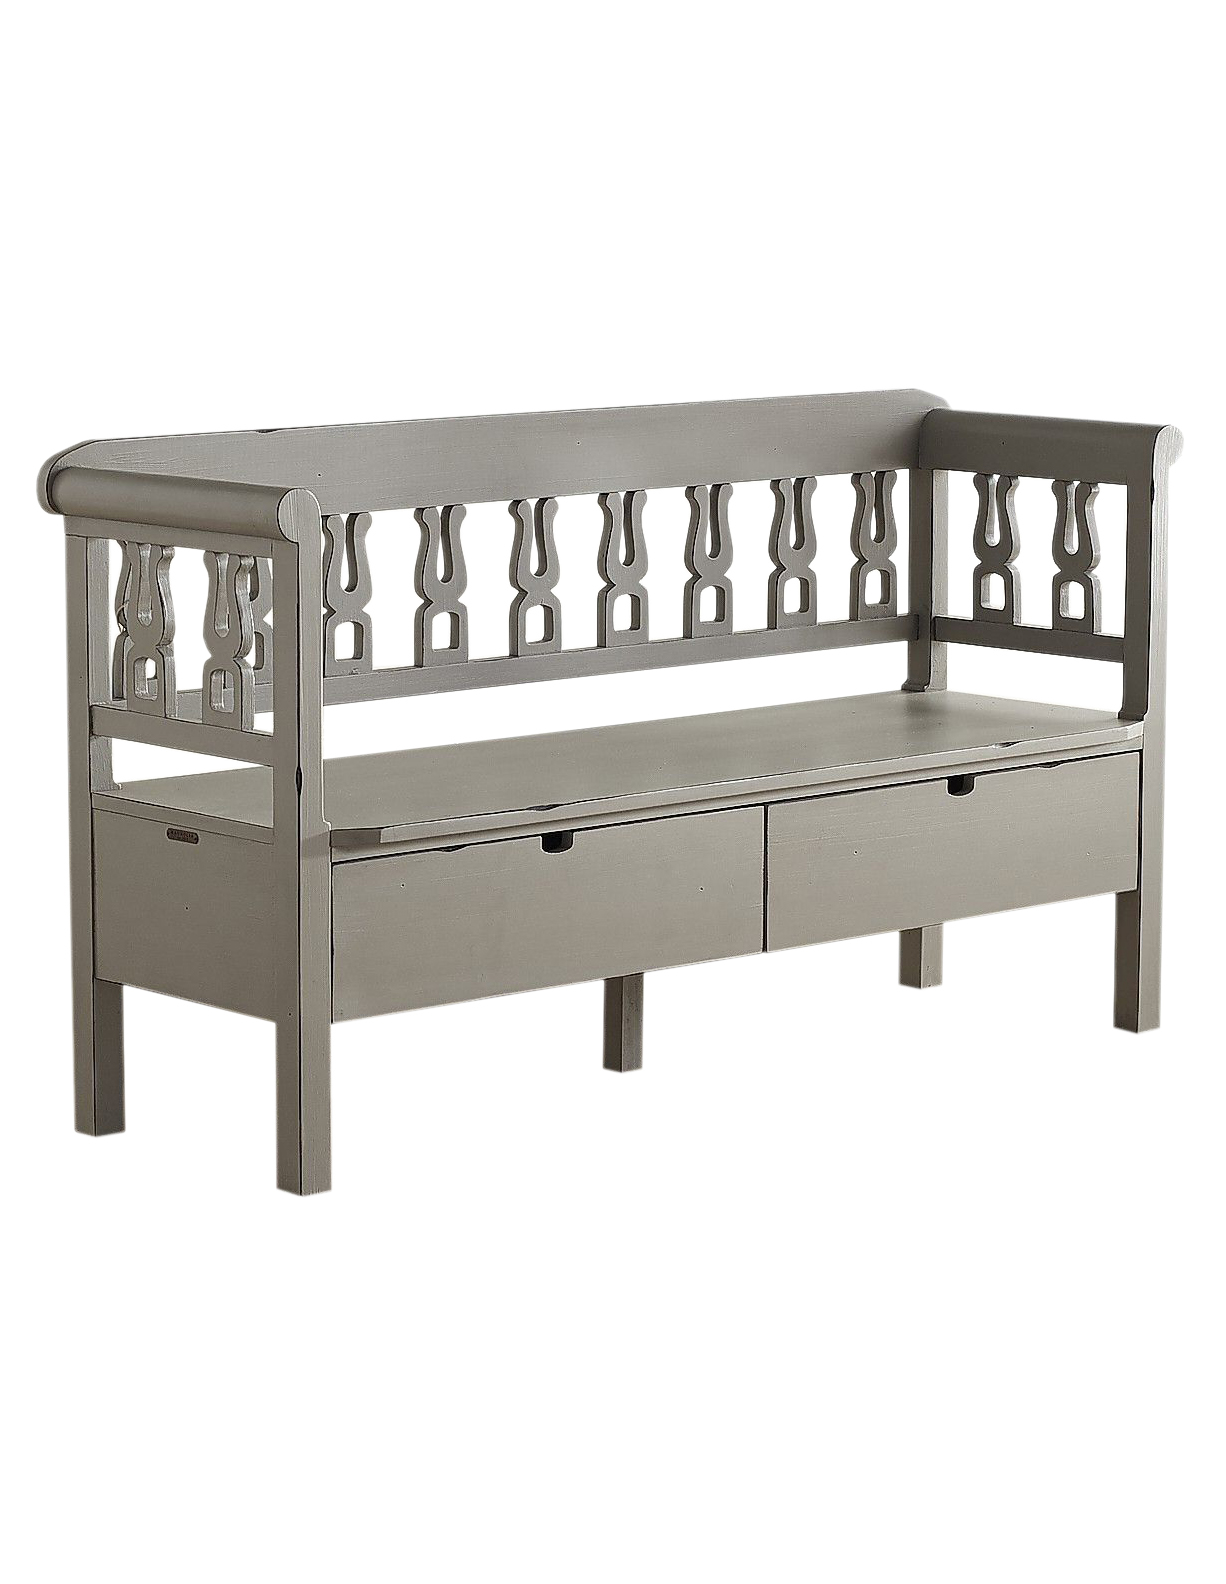 Magnolia Home Furniture Park Bench: Our Top 5 Picks From Joanna Gaines's New Pier 1 Furniture